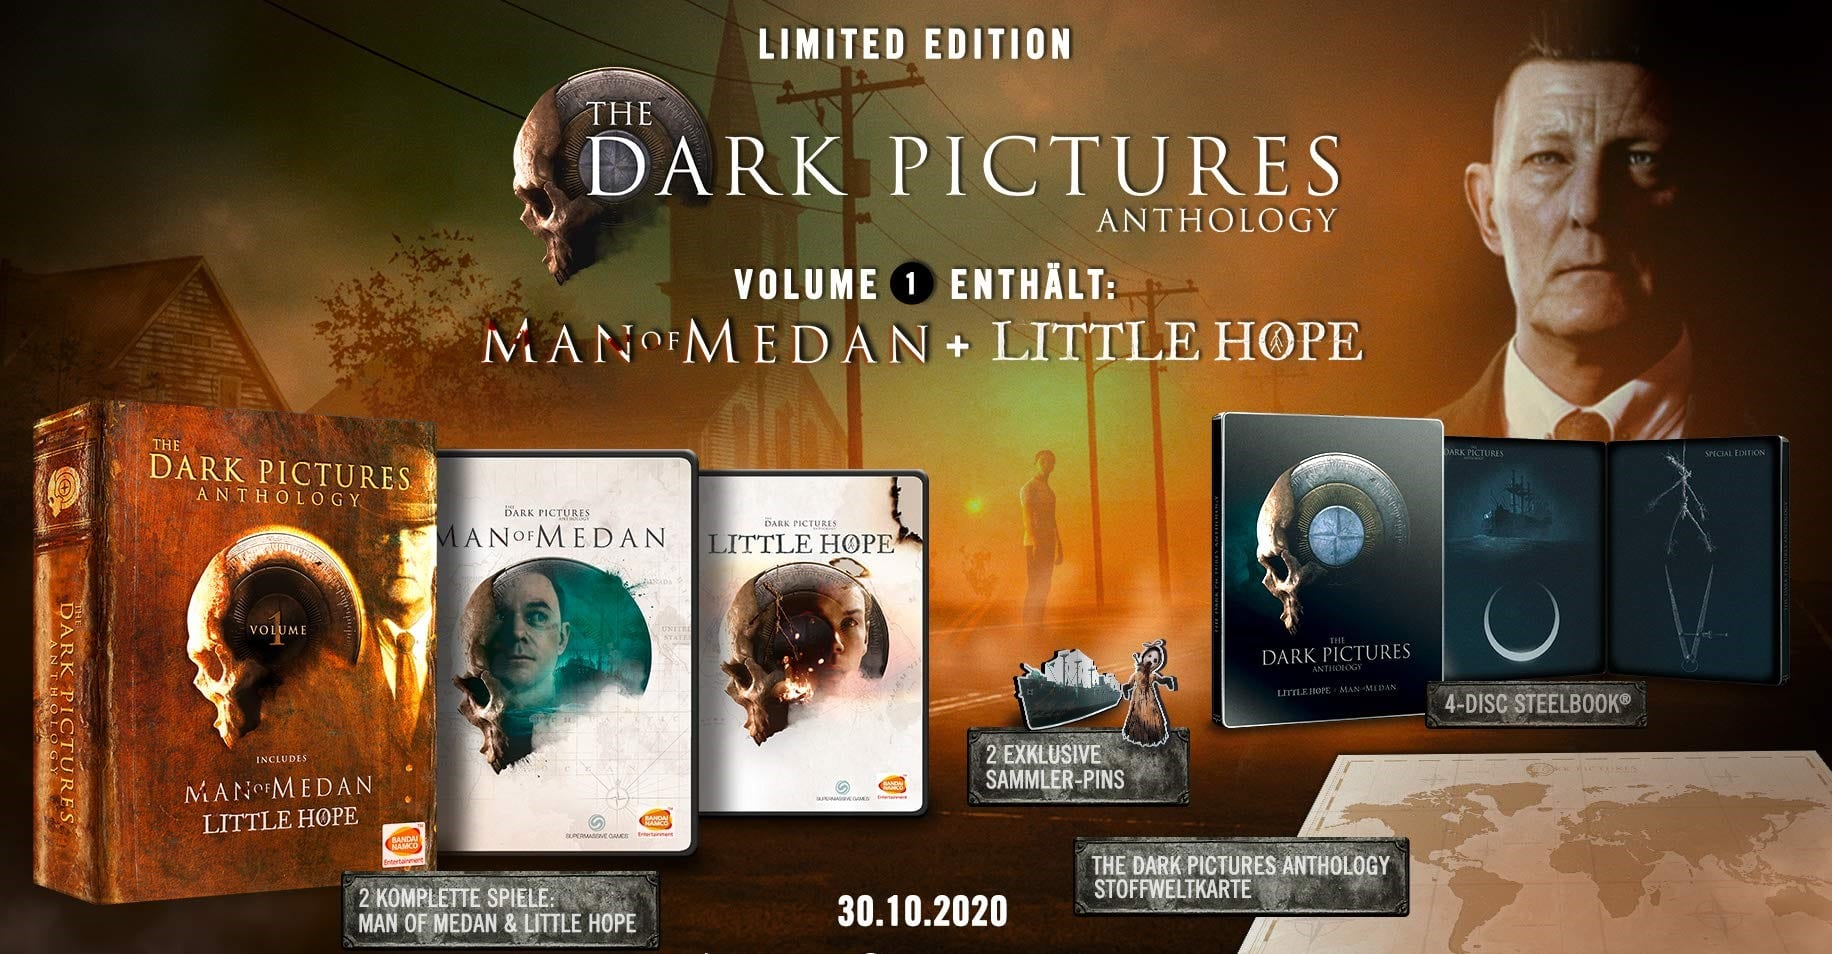 The Dark Pictures Anthology Little Hope Limited Edition